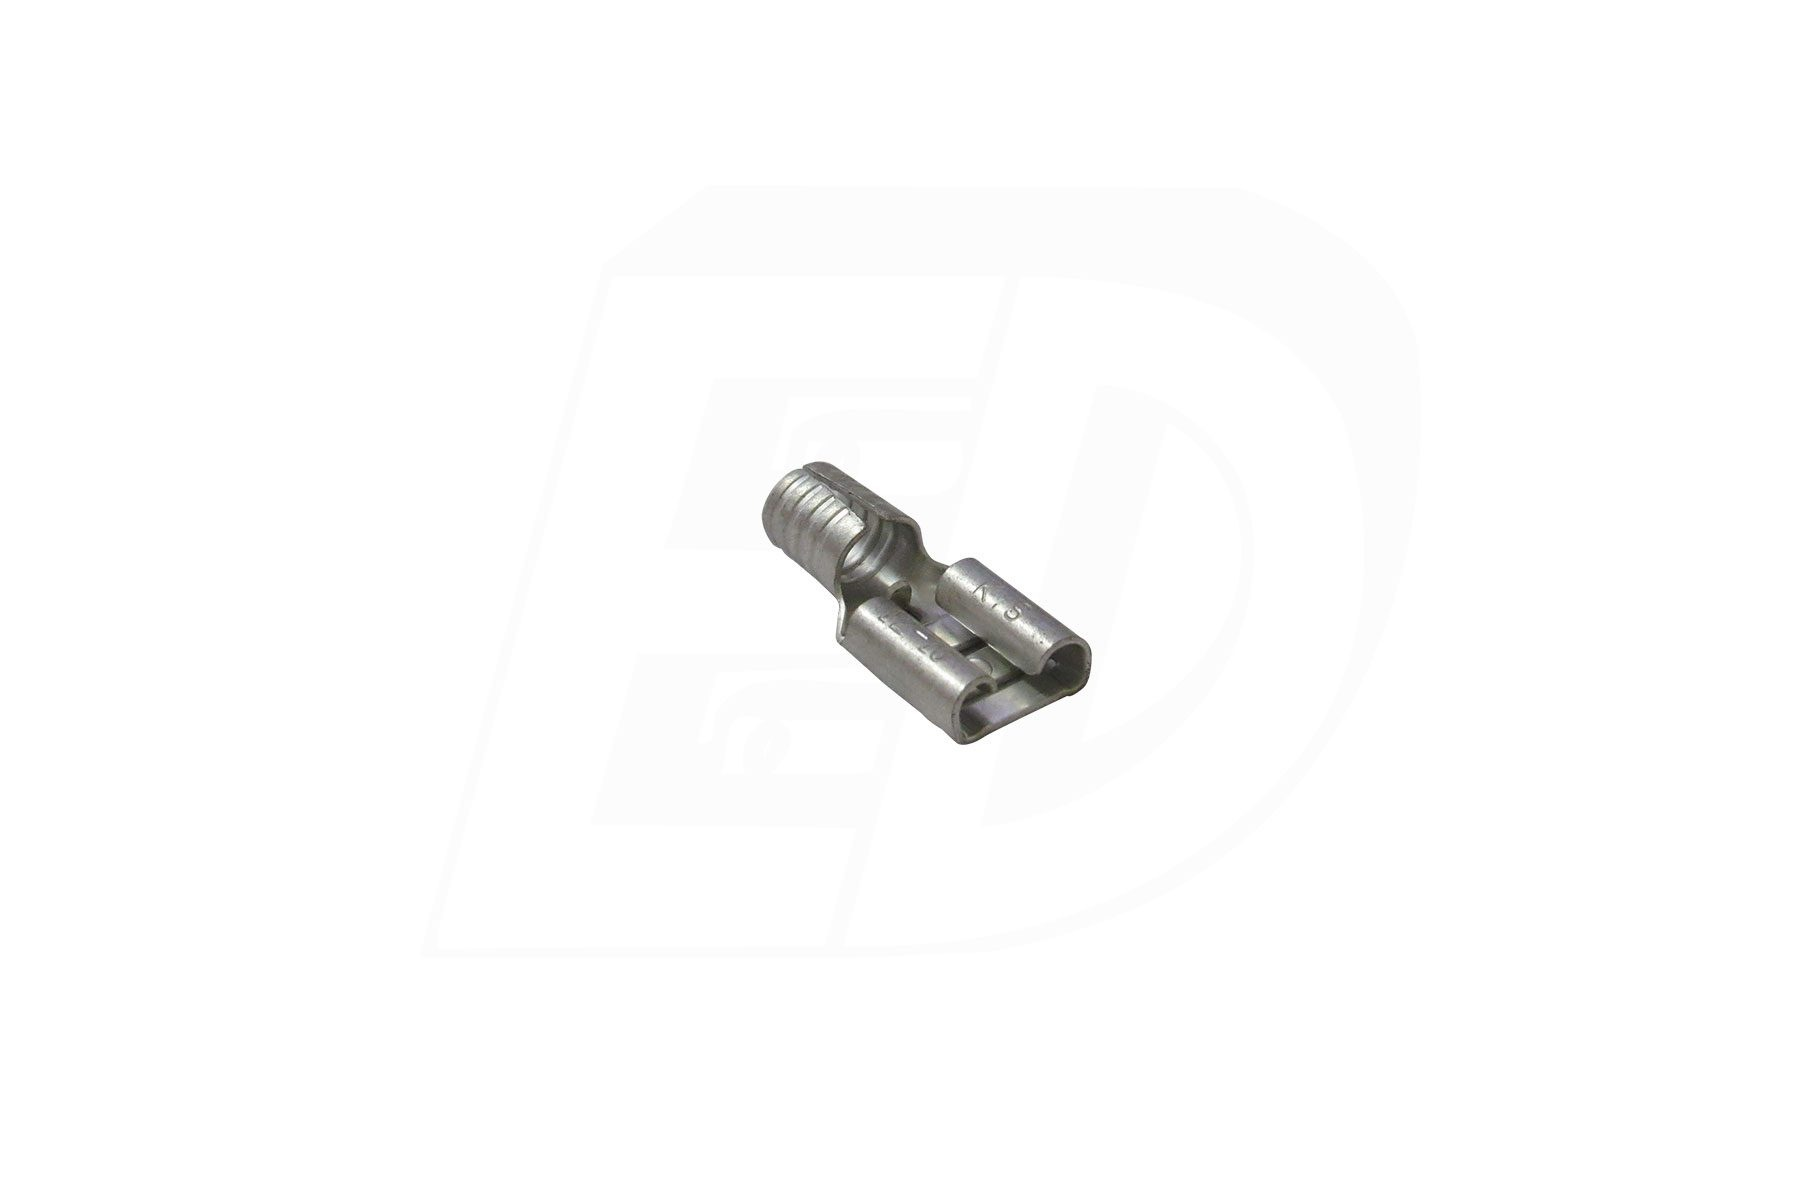 Butted Seam Female Disconnect Terminals 12 - 10 AWG